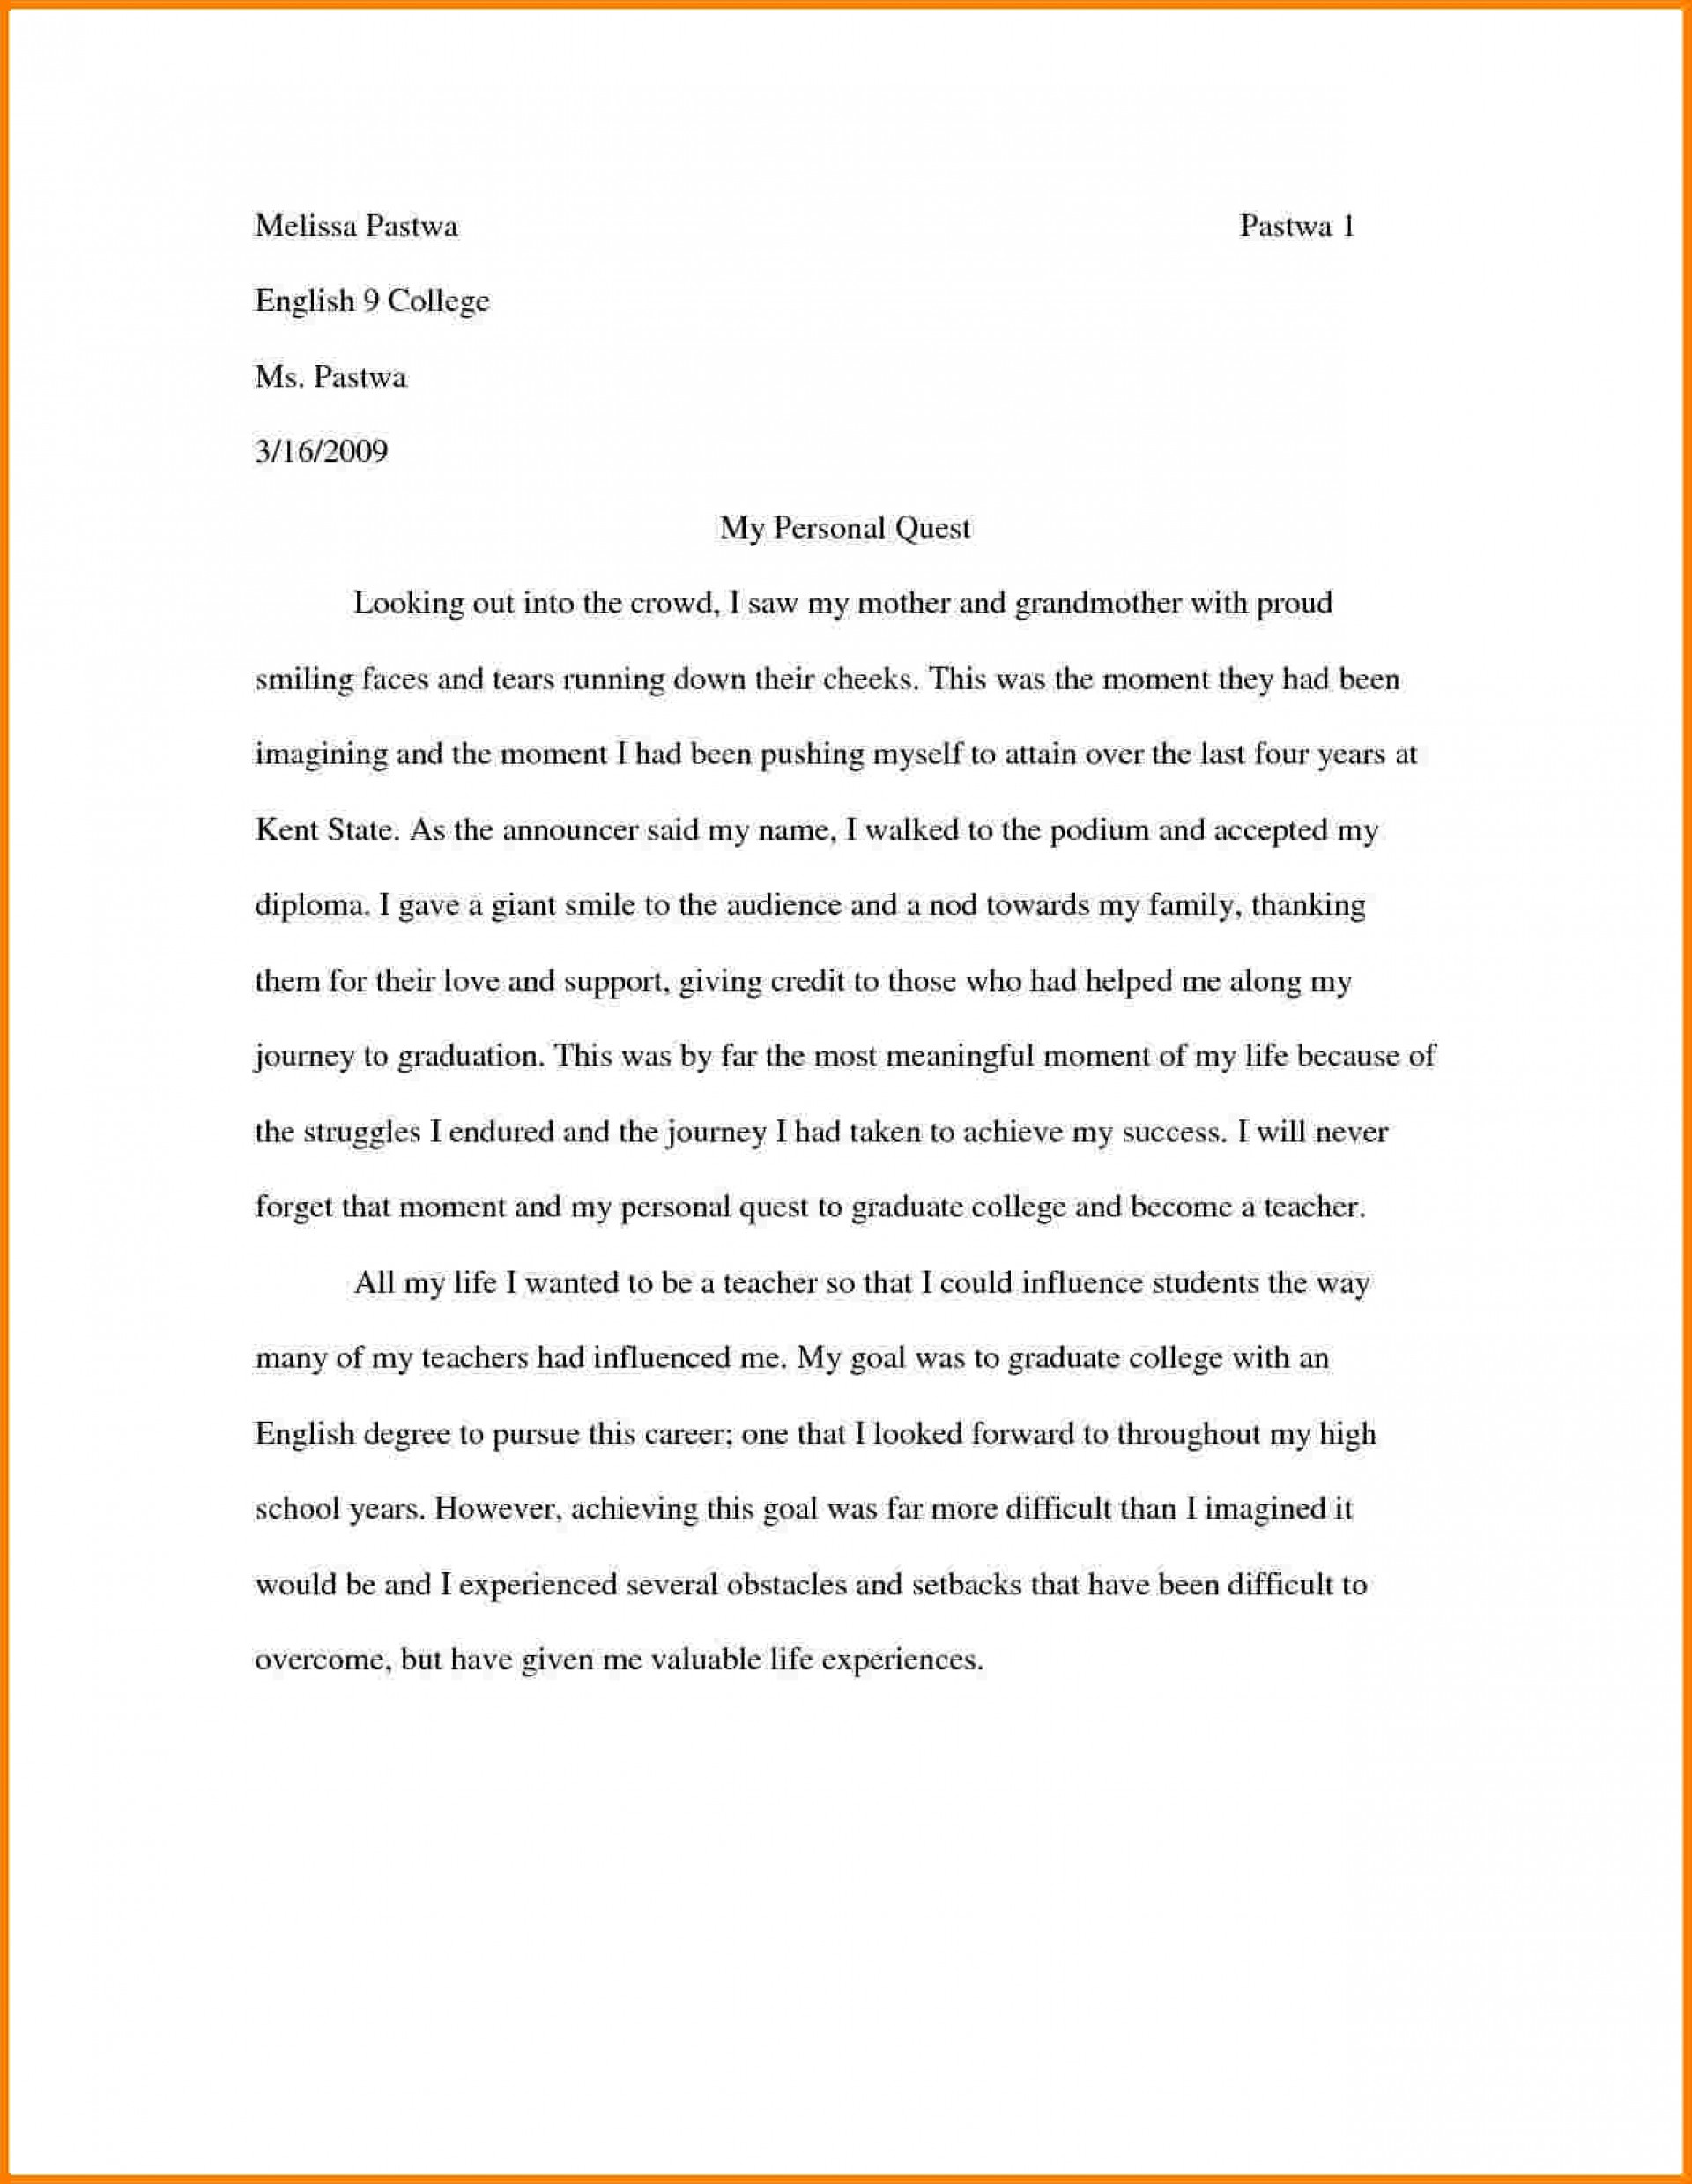 020 3341381556 How To Write Proposal20nt Essay Topics Buy Researchs Cheap Examples20 Good For Awesome Research Papers Argumentative In College Interesting Paper The Philippines 1920